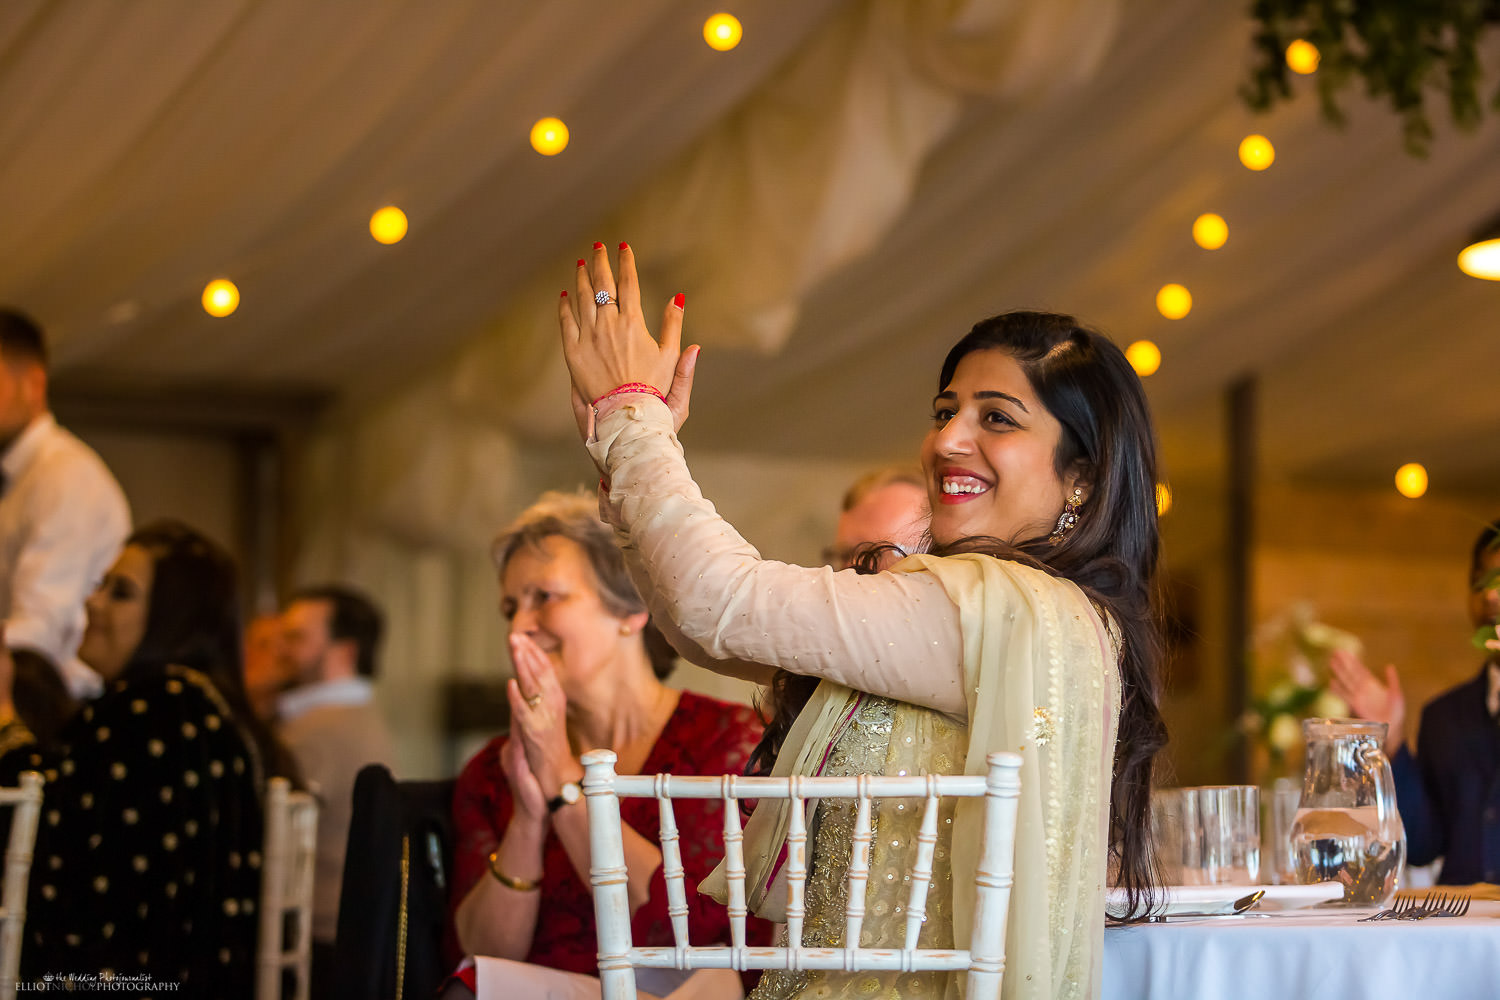 Party guest enjoying the speeches. Candid photo by wedding photojournalist Elliot Nichol.